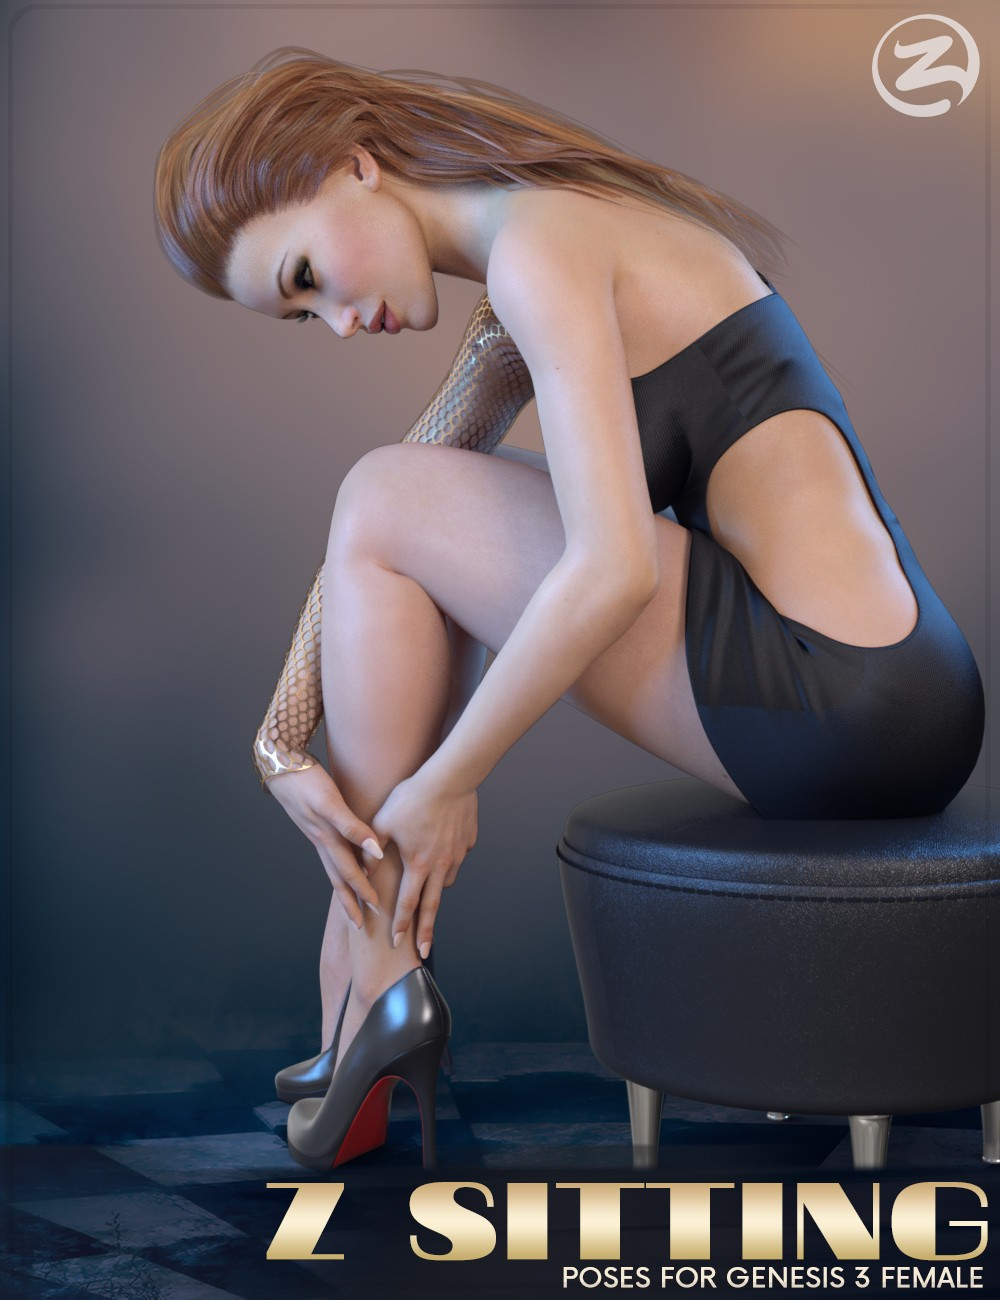 Z Sitting - Poses for Genesis 3 Female